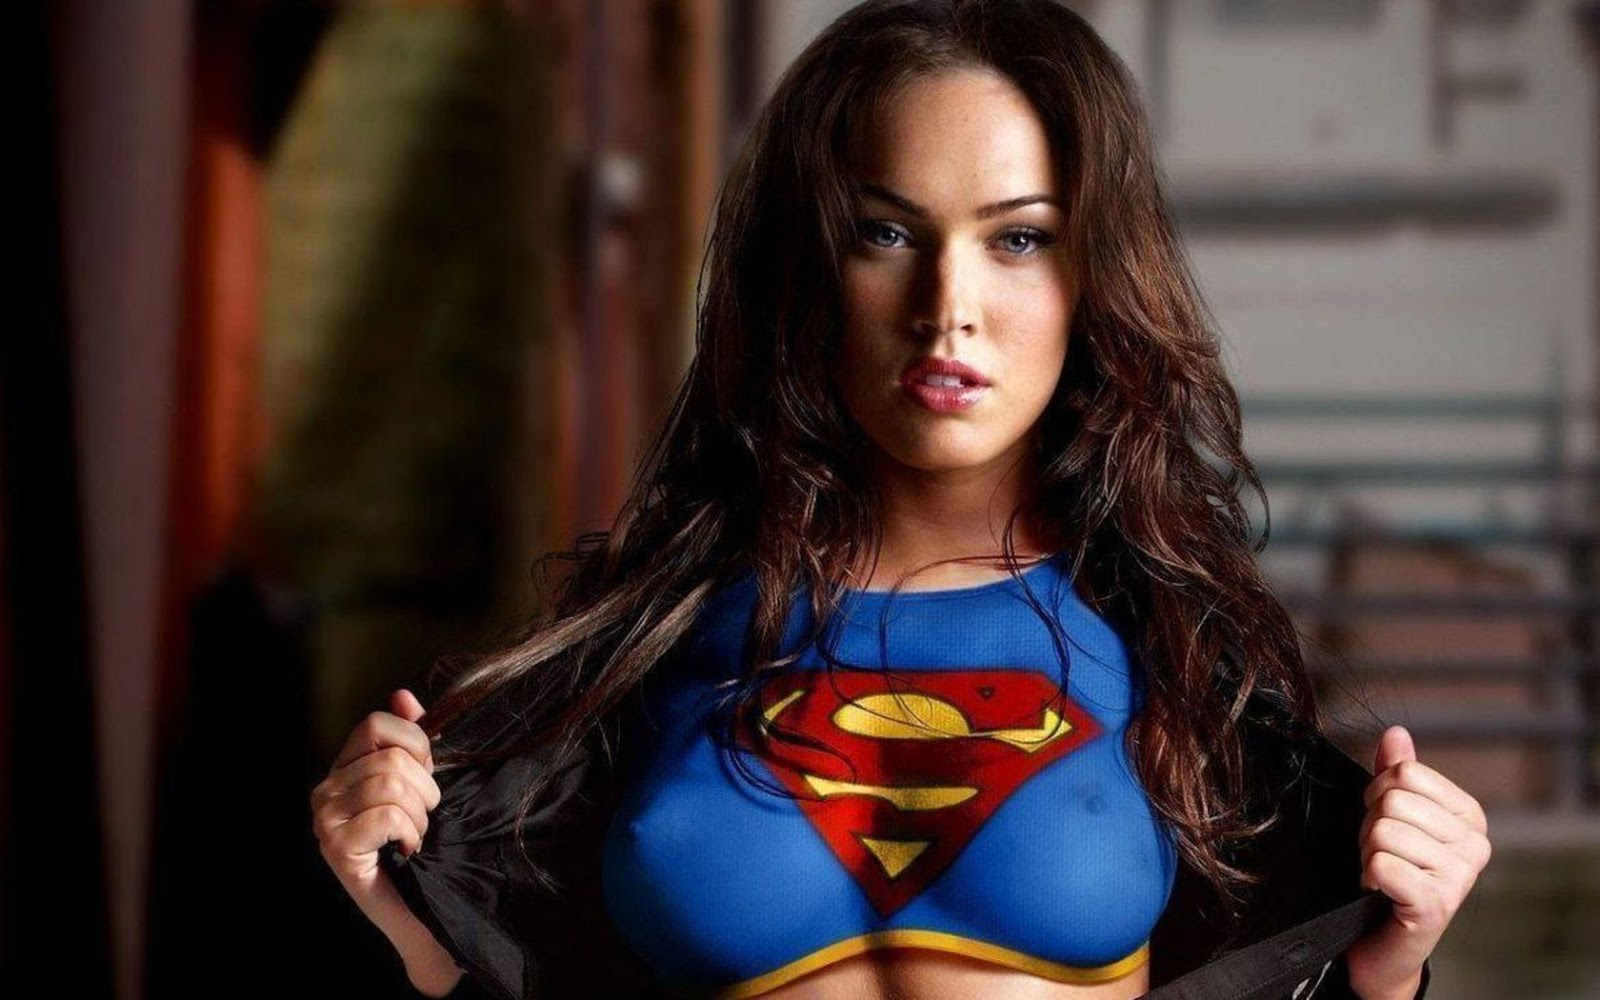 This is a sport right? megan fox super girl | My Favorite Sport